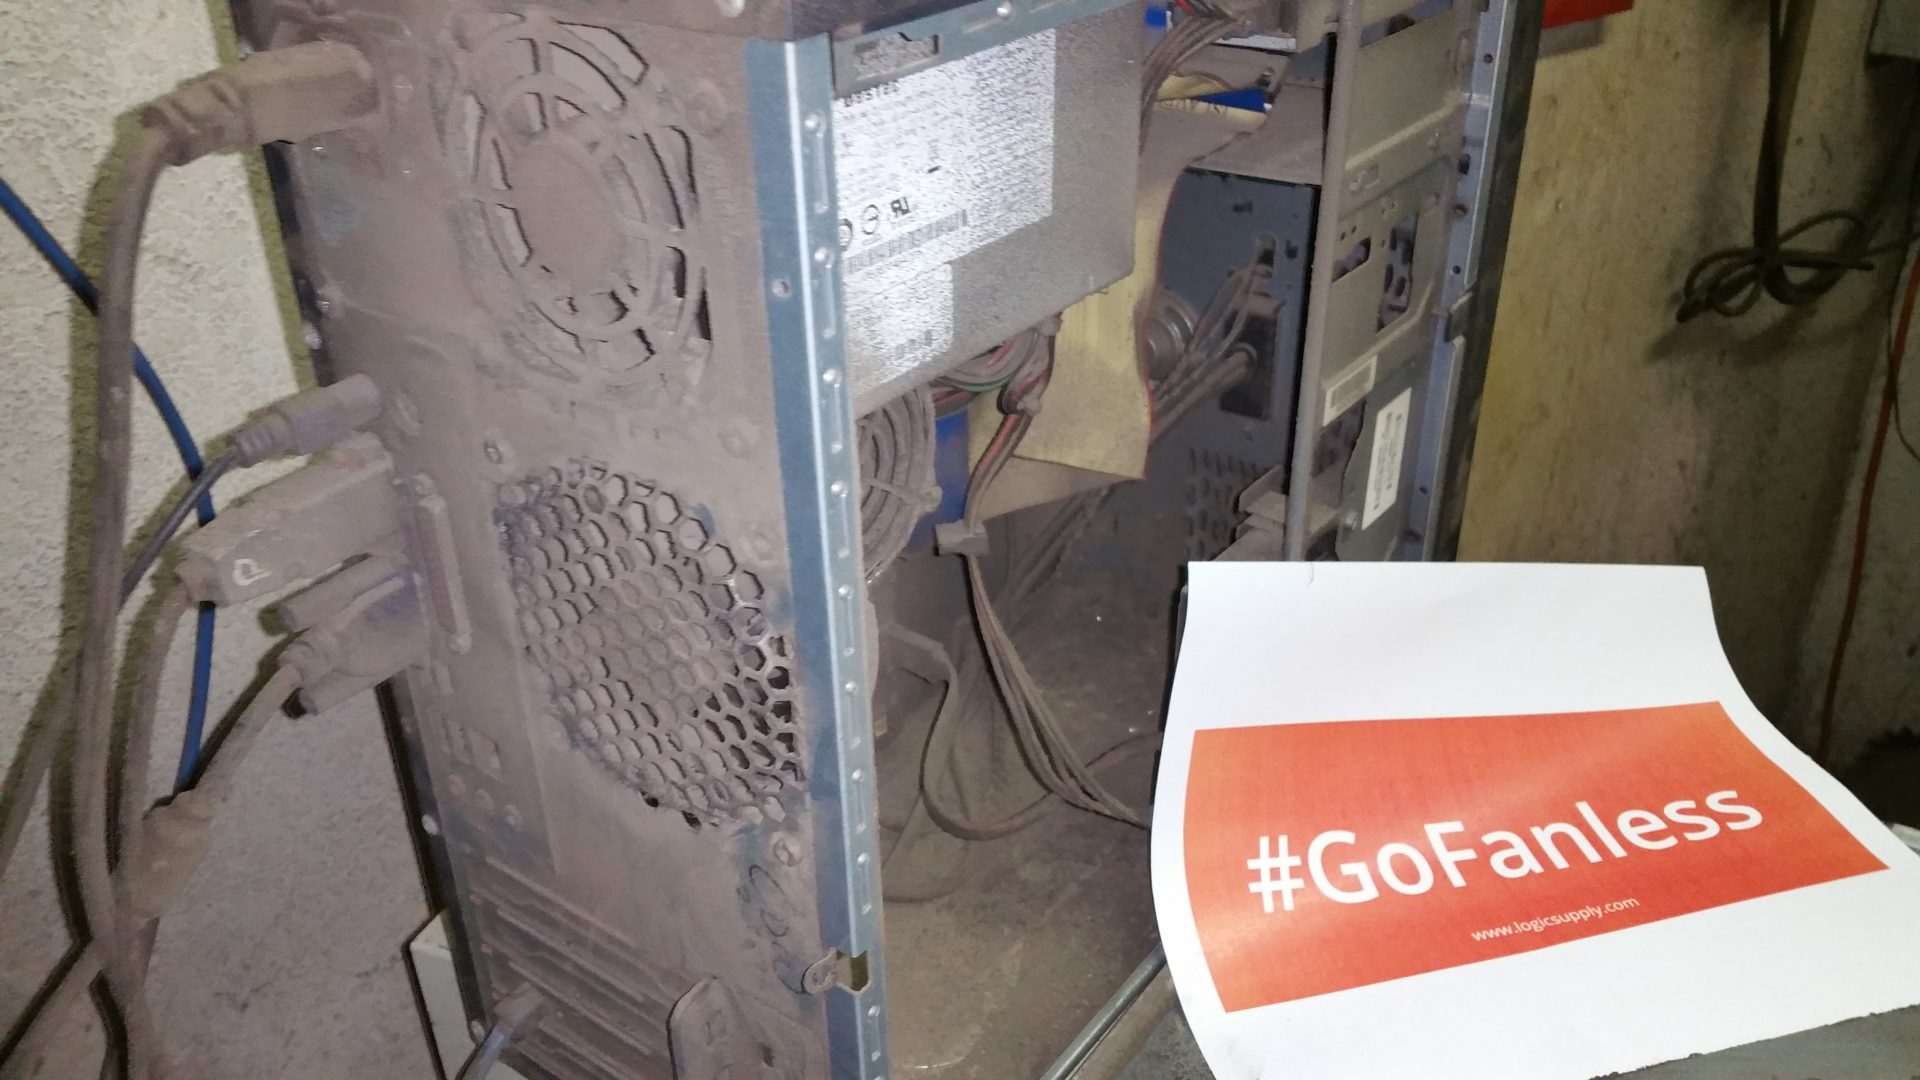 The World's Dirtiest PC Contest Week 1 Winner Is…